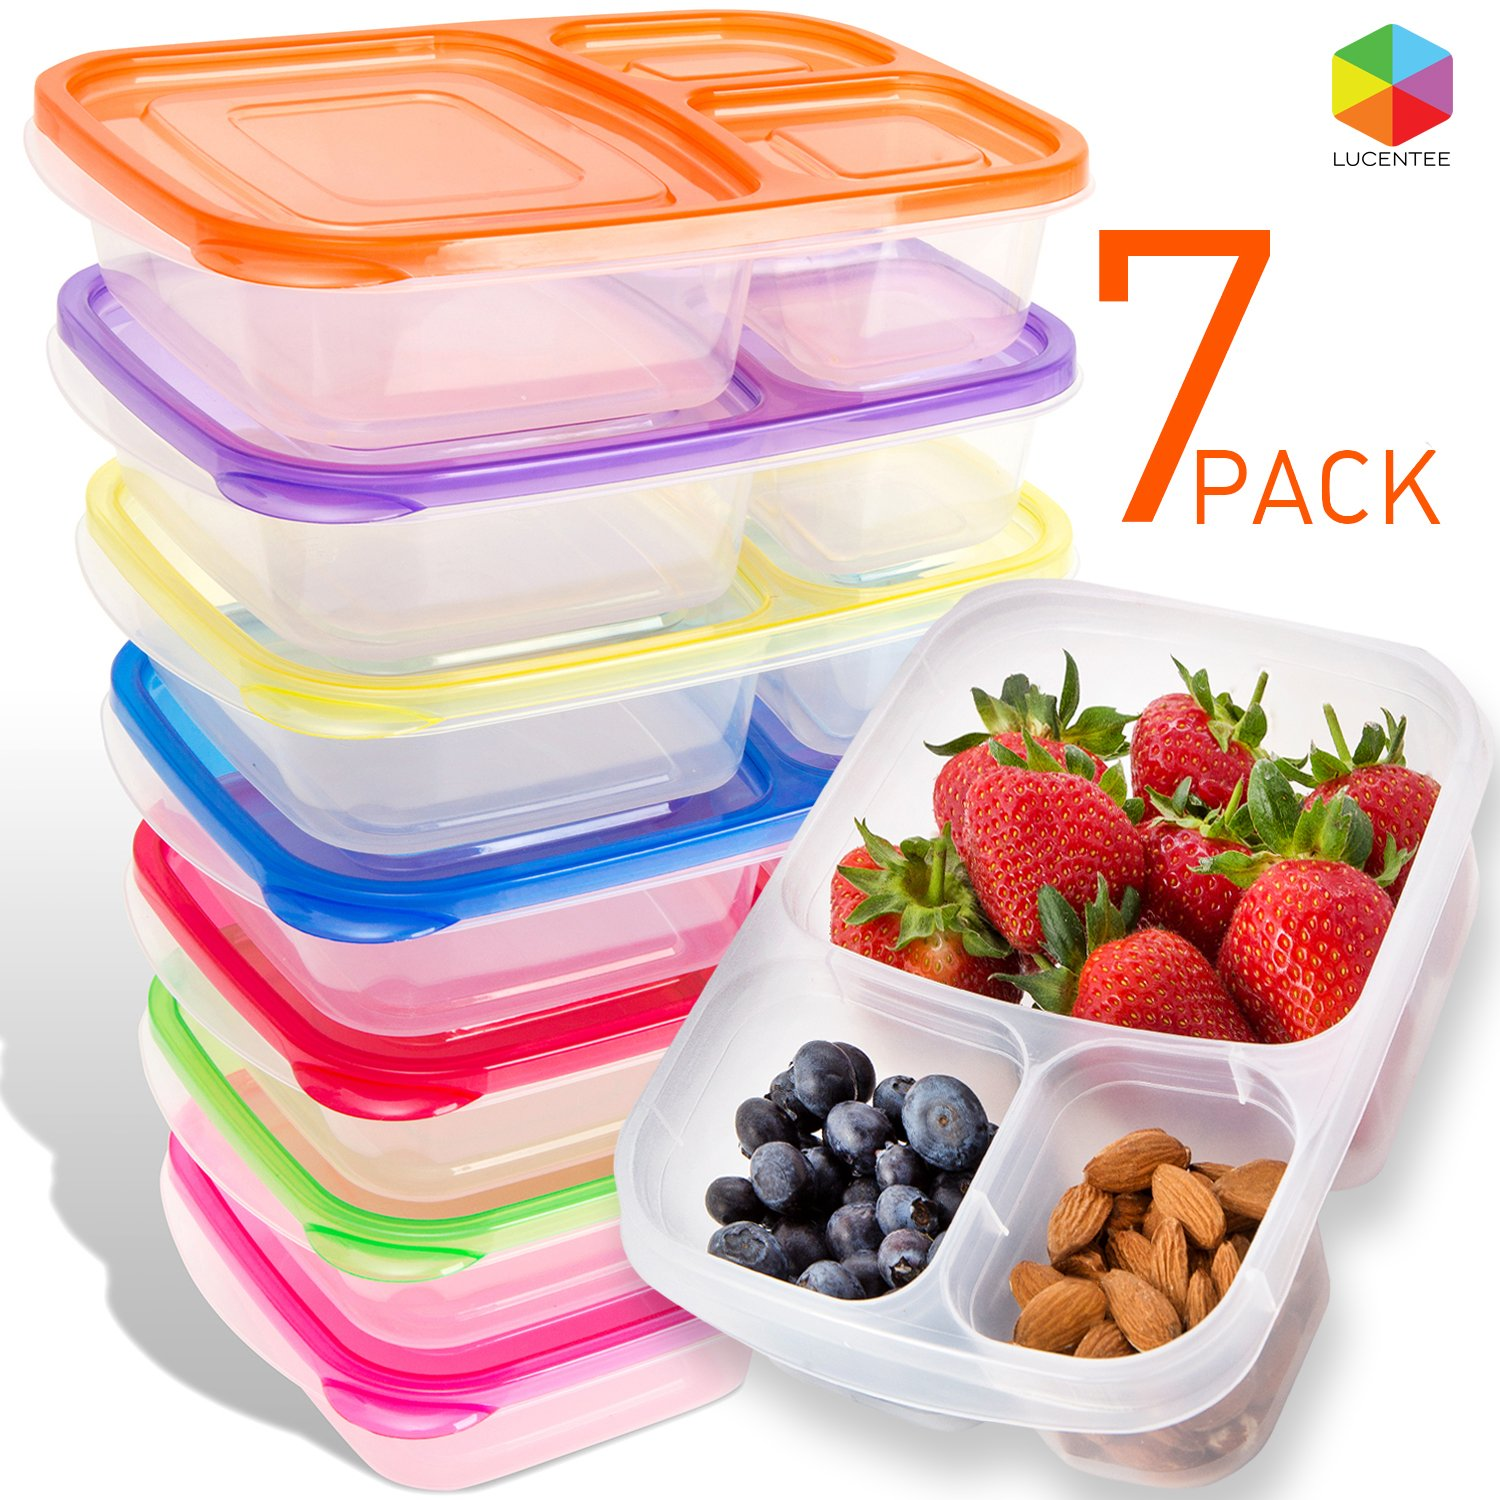 Bento Lunch Box | Meal Prep Containers | 7 Pack | Reusable 3-Compartment Plastic Divided Food Storage Container Boxes for Kids & Adults | Microwave, Dishwasher and Freezer Safe by Lucentee